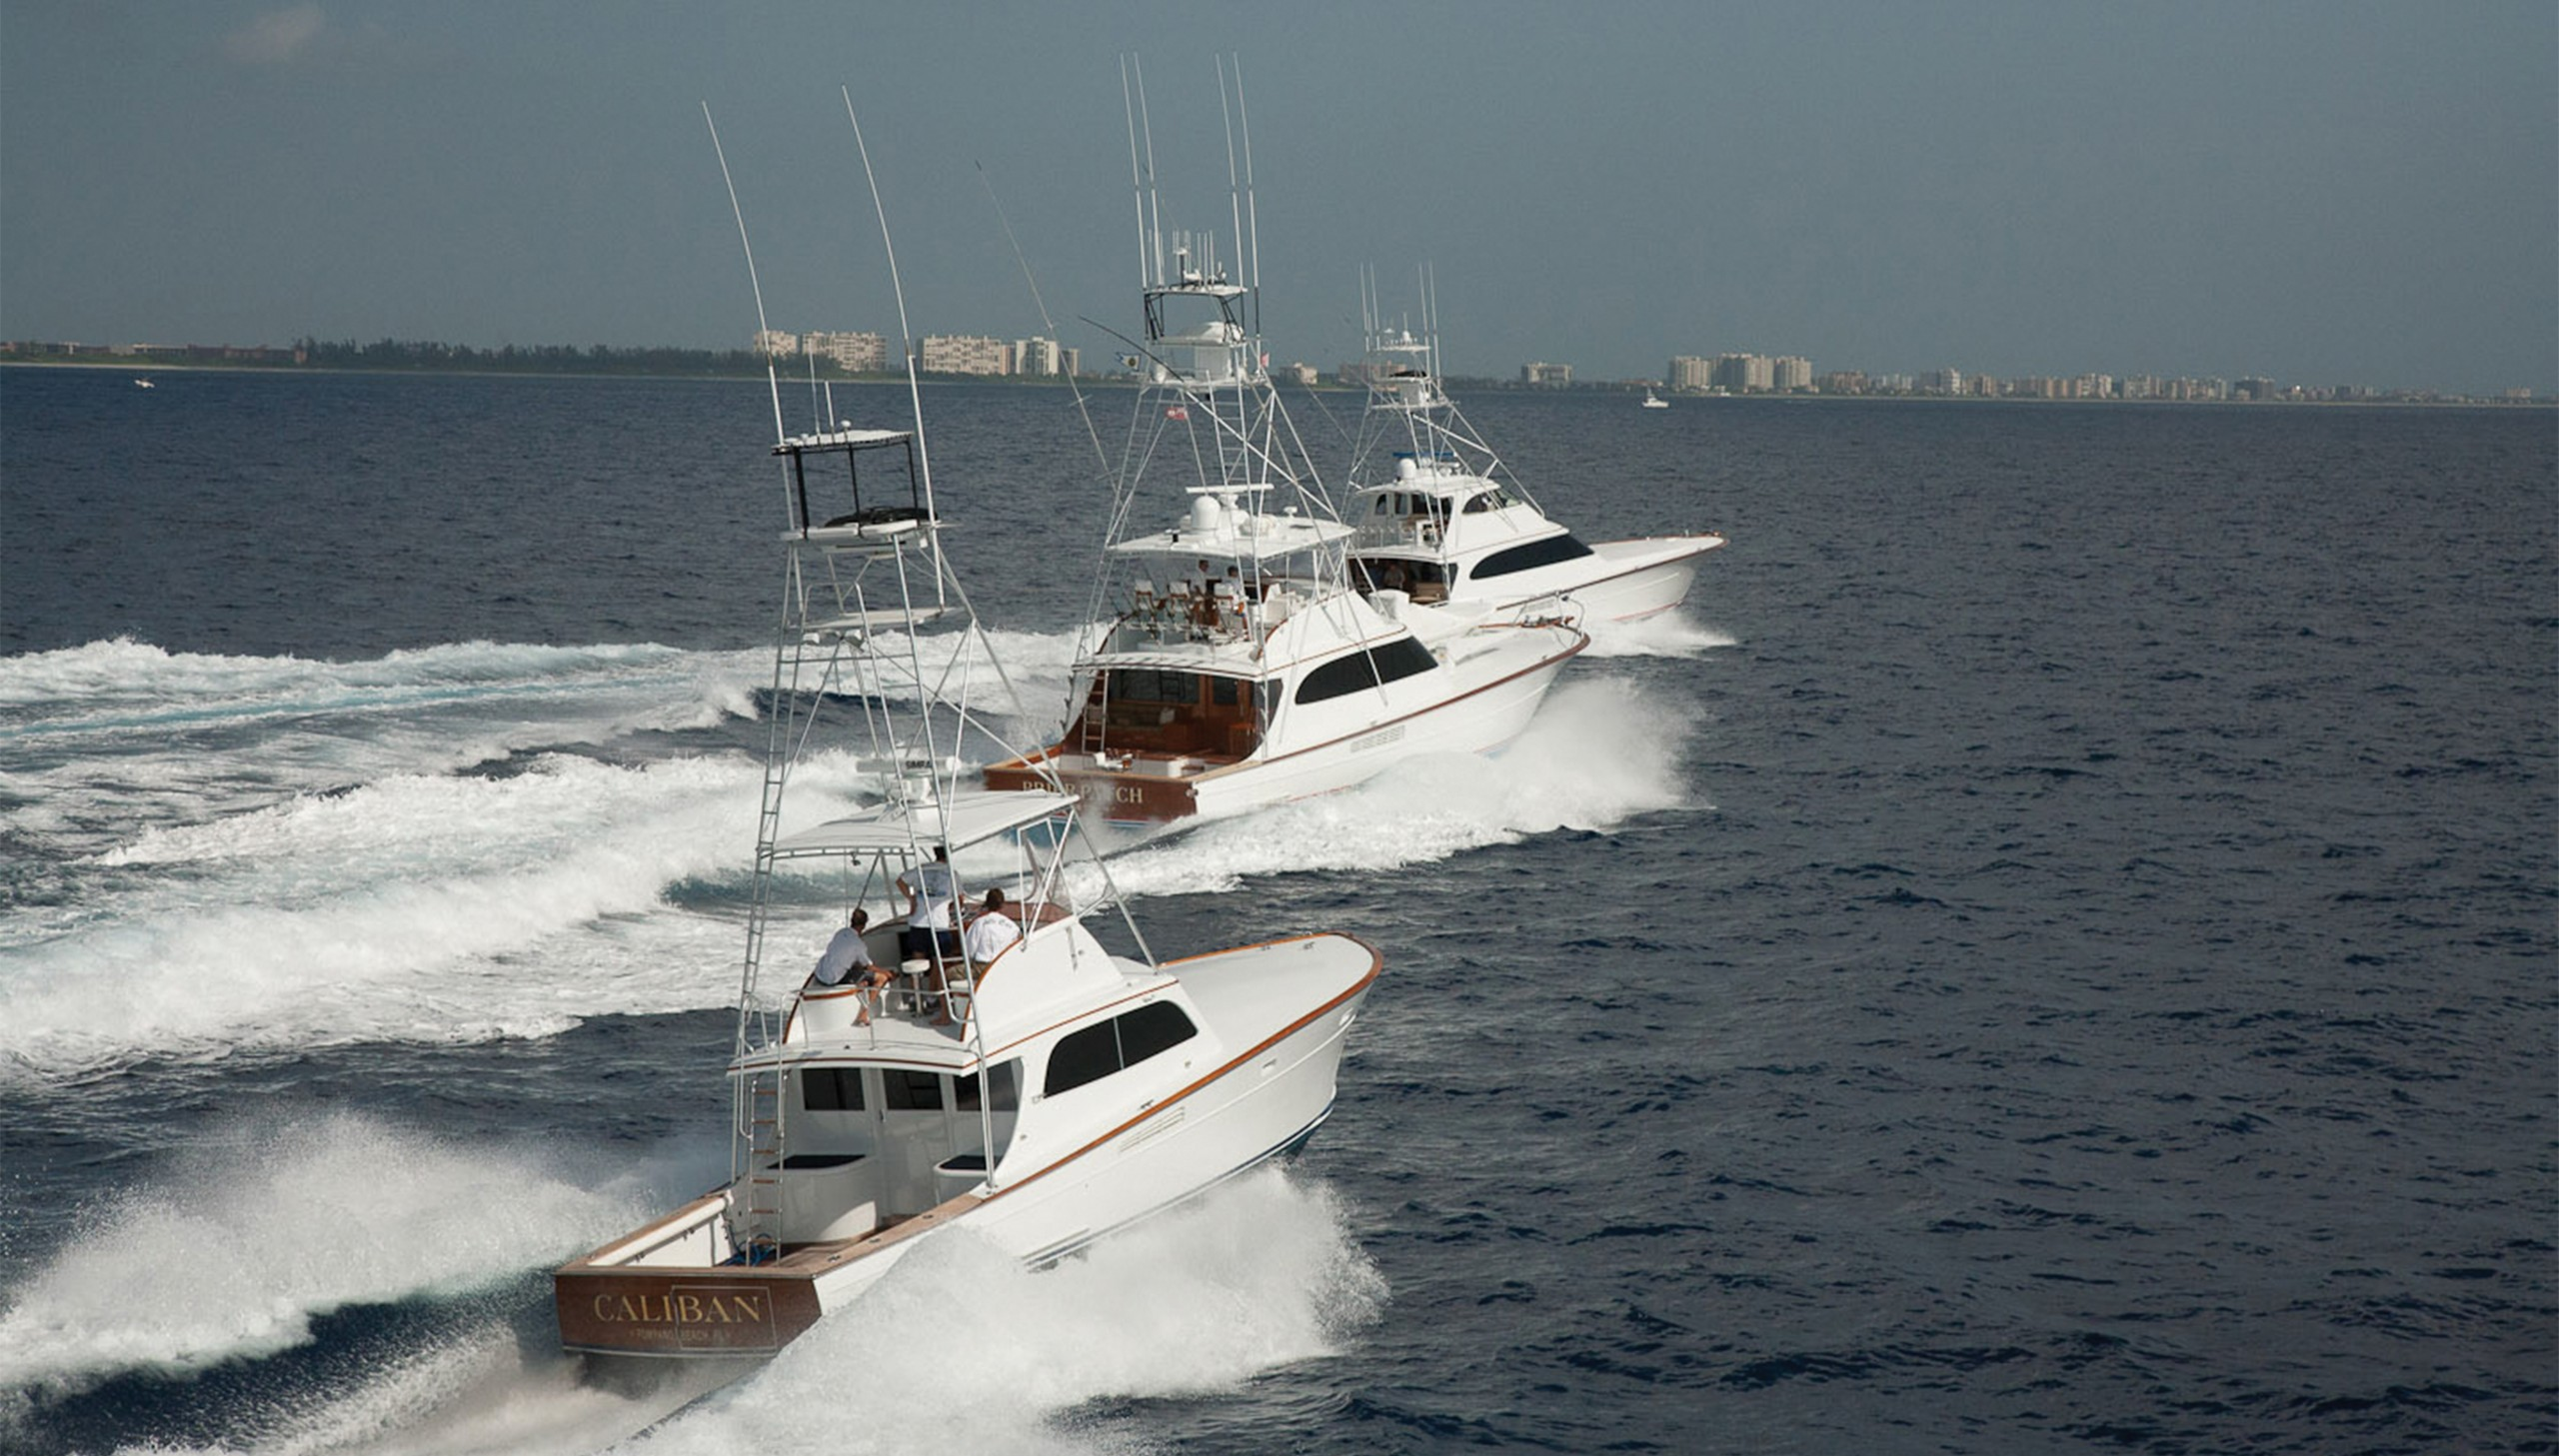 3 Merritt boats running in formation off the coast of Florida